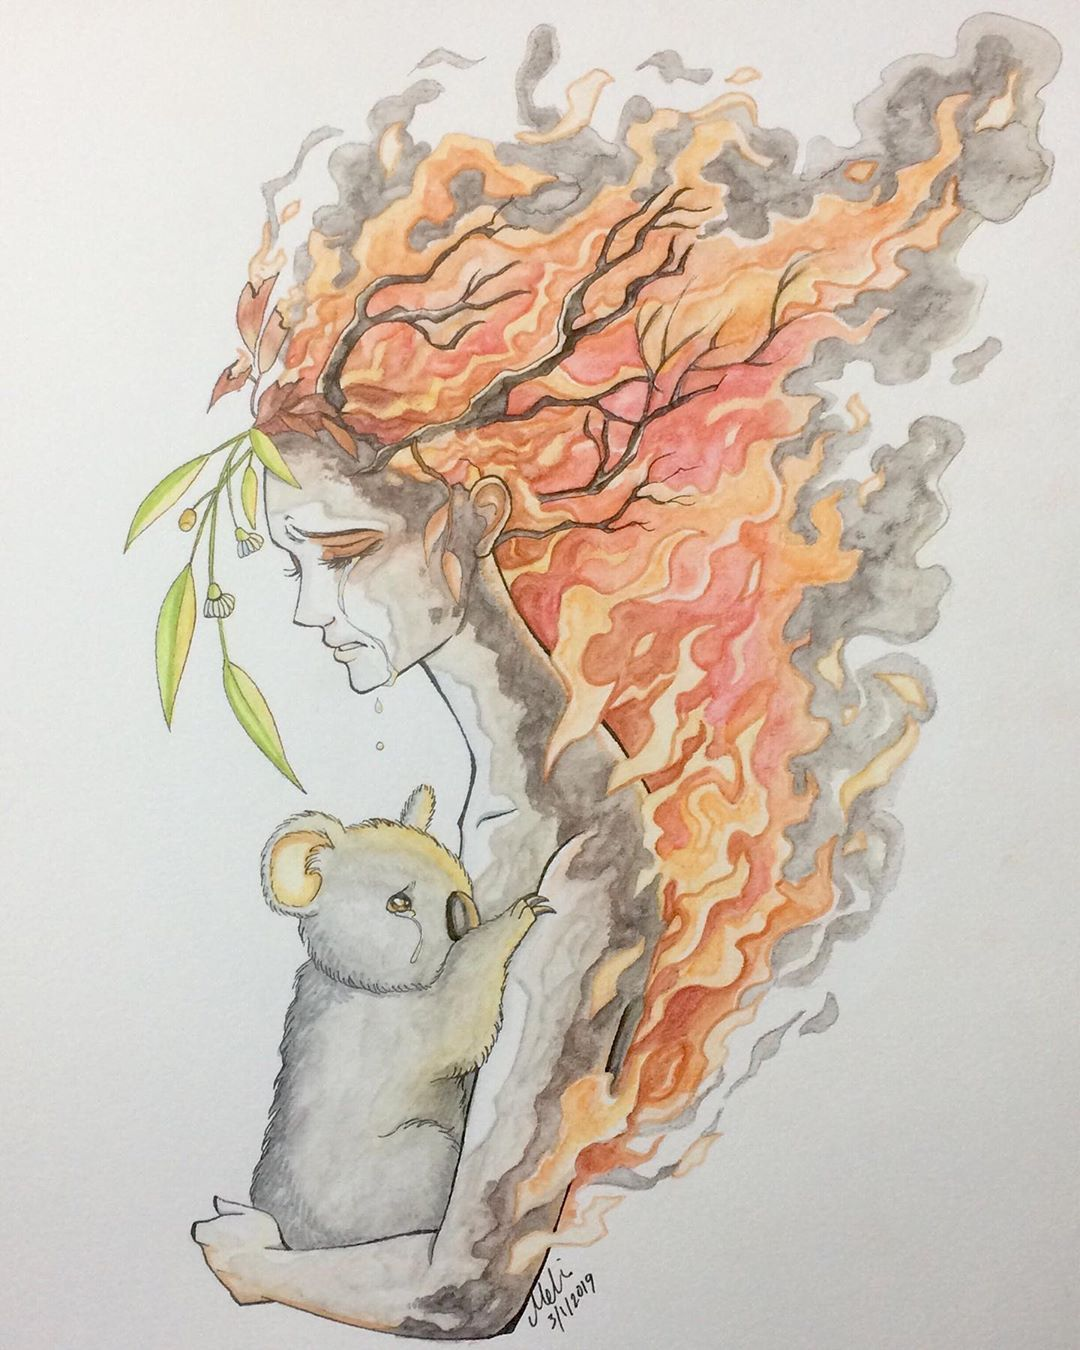 My Illustration For The Australian Bushfires I Can T Seem To Find Any More Words That Haven T Already Been Said Th In 2020 Earth Drawings Environmental Art Earth Art